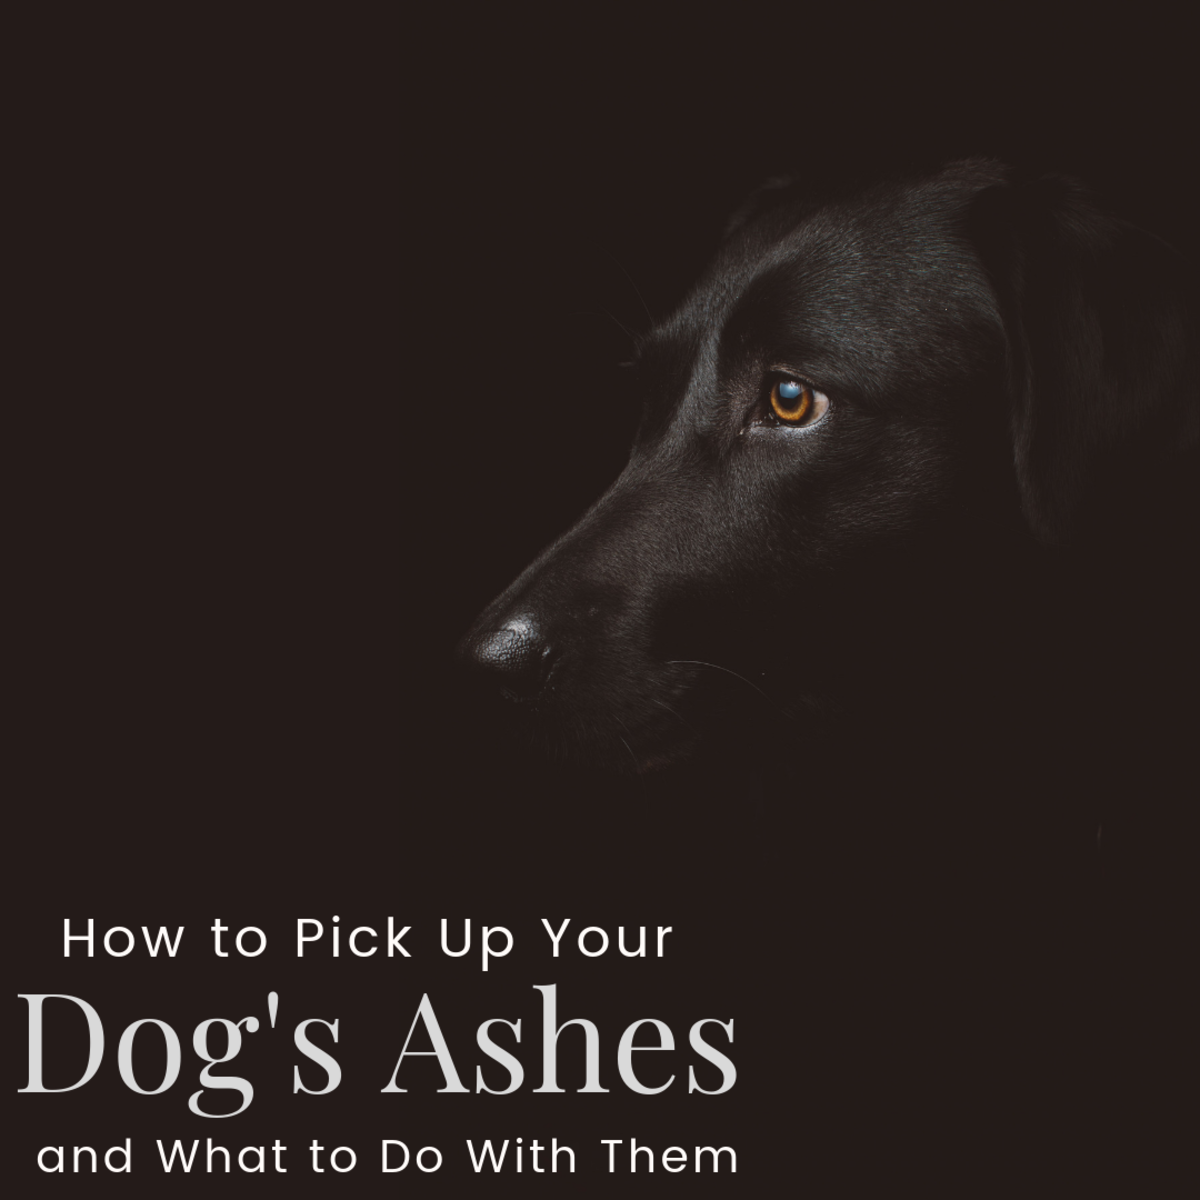 Picking Up Your Dog's Ashes Can Be Difficult